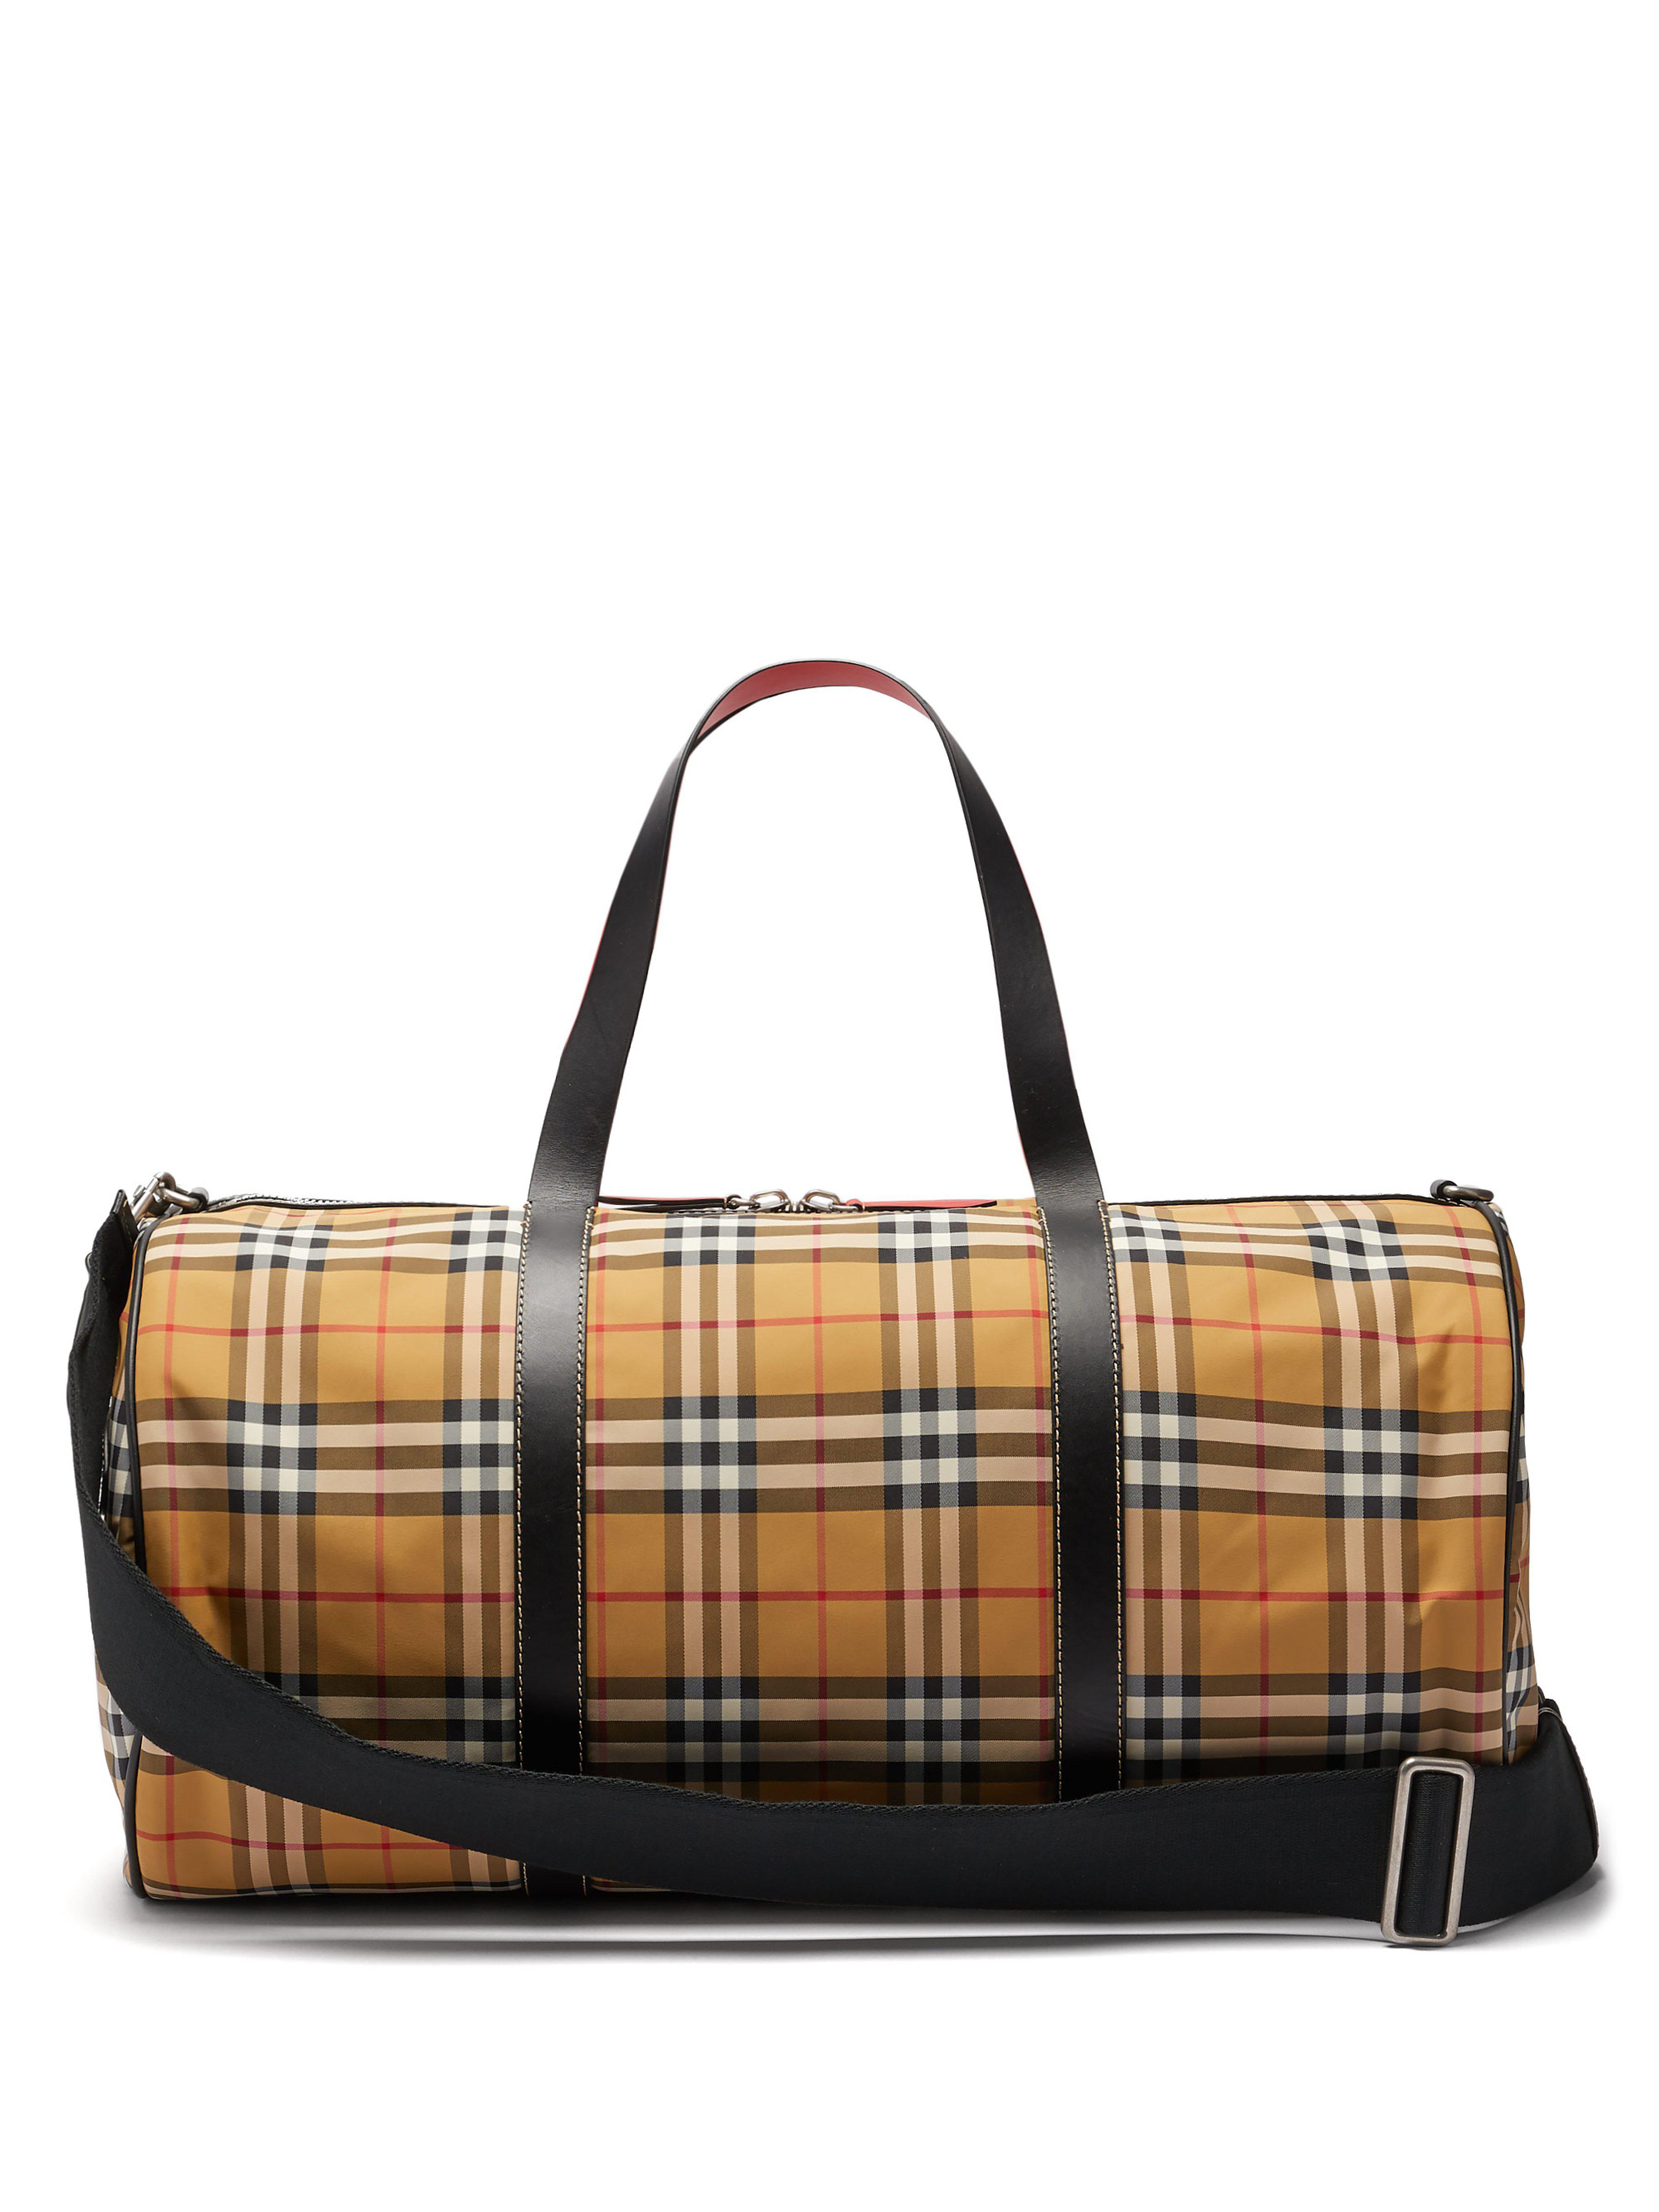 Burberry Kennedy Vintage Check Weekend Bag in Brown - Lyst 3e654d163a32b